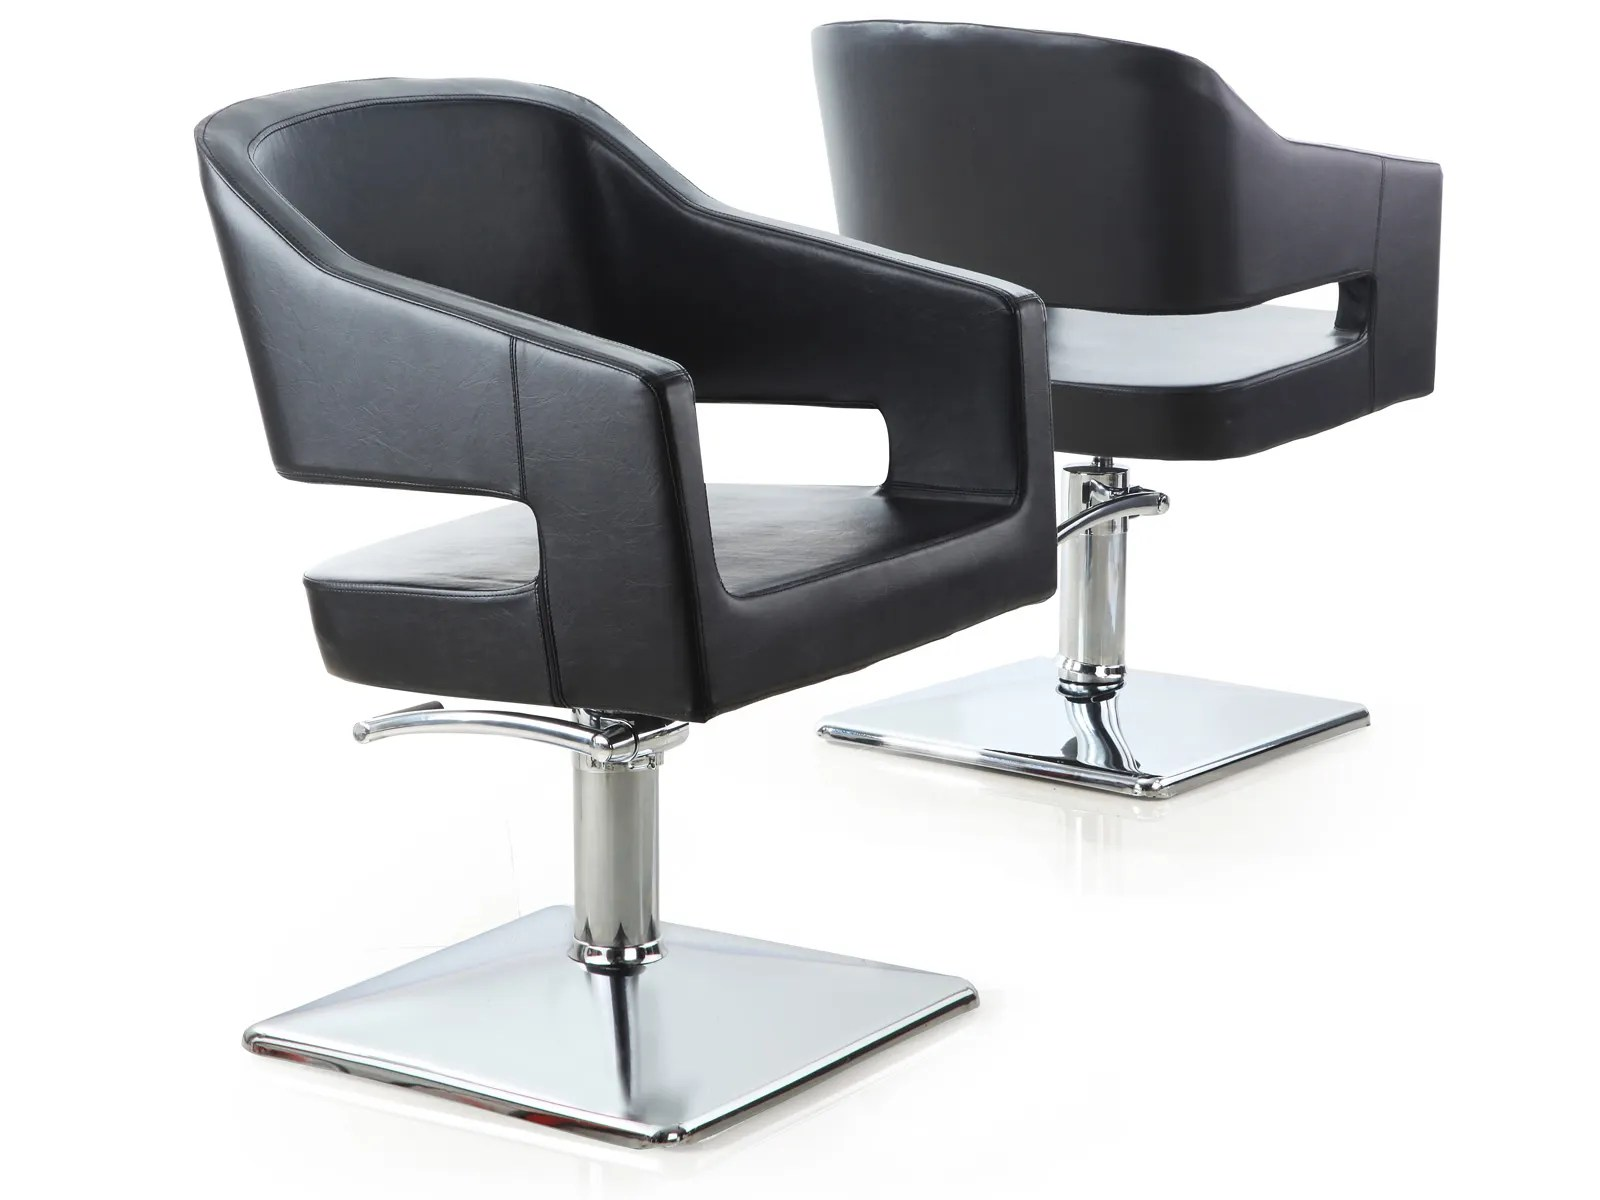 Sofas Salon New Range Of Salon Furniture Modern Styling Chairs And